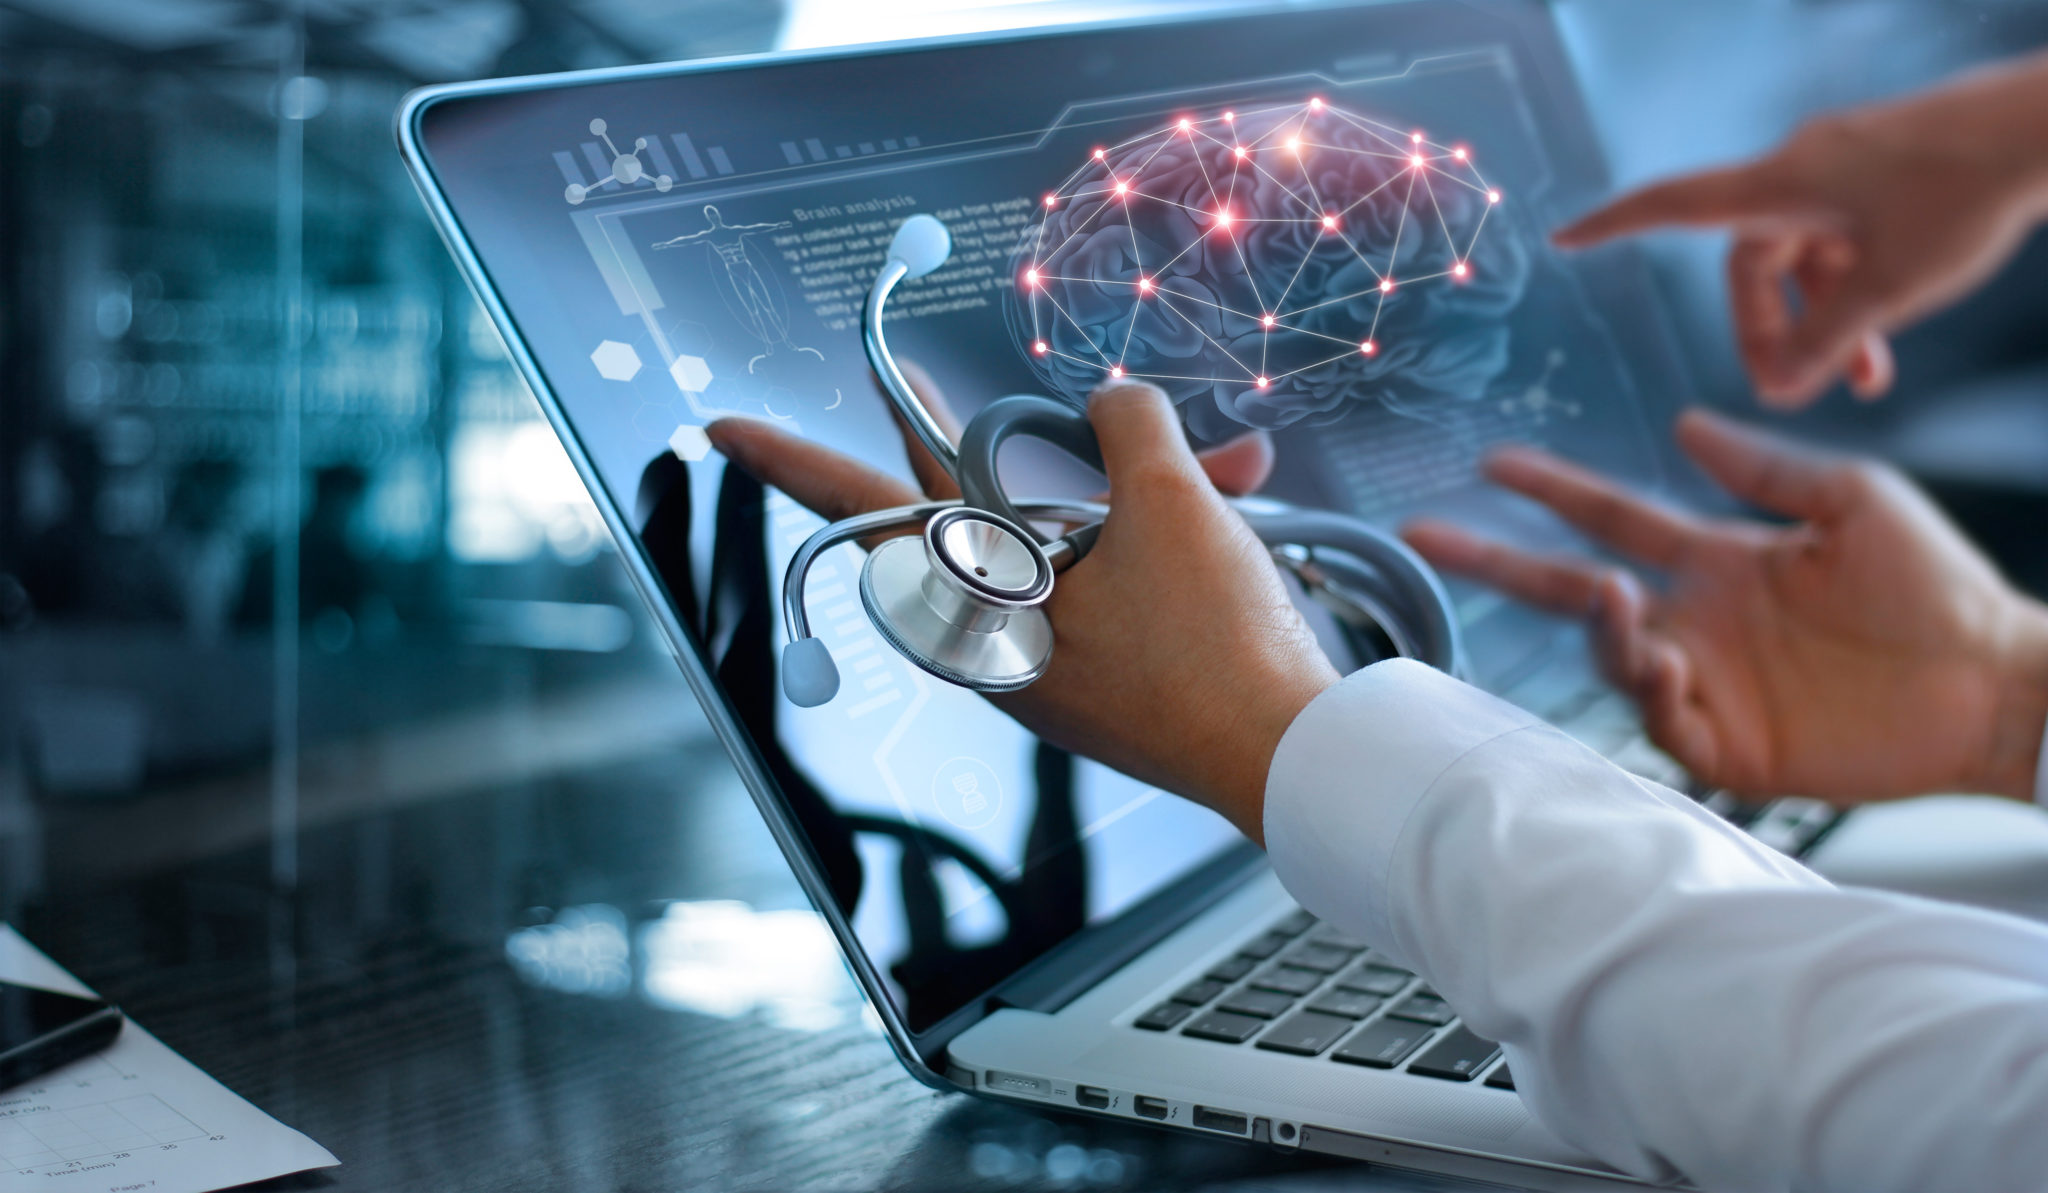 Medicine doctor team meeting and analysis. Diagnose checking brain testing result with modern virtual screen interface on laptop with stethoscope in hand,